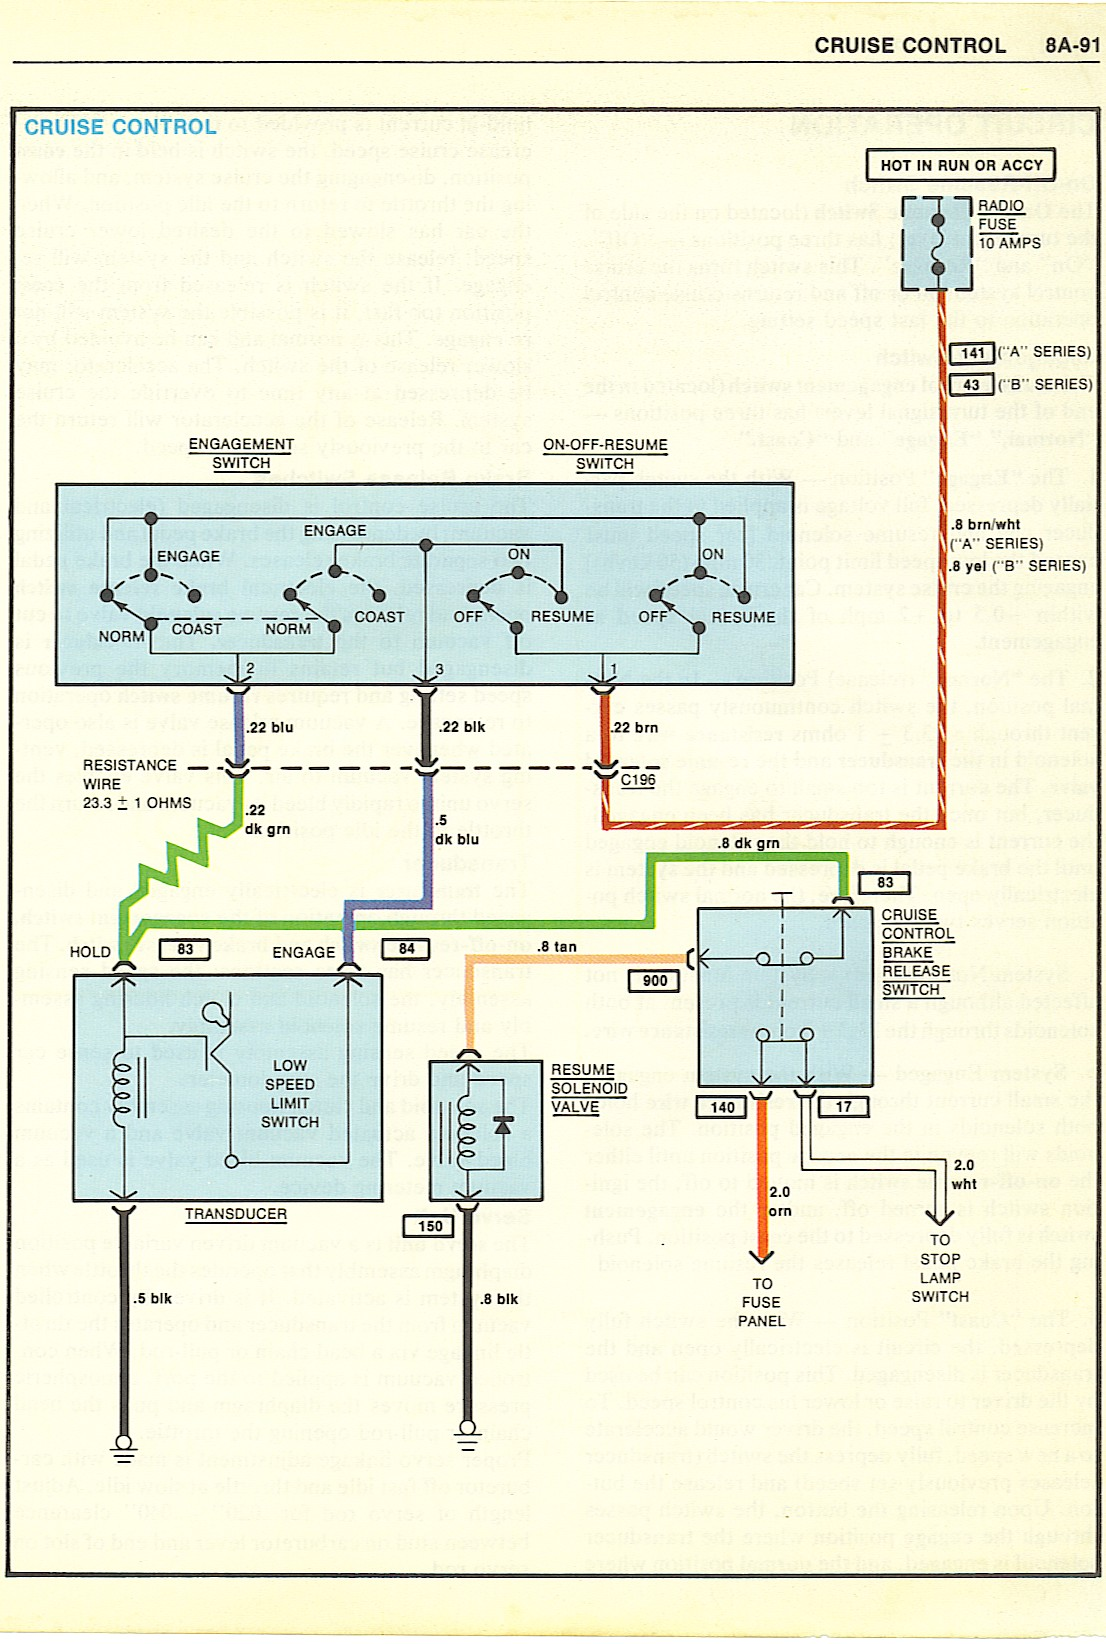 Wiring Diagrams on kenworth t660 headlight wiring diagram, kenworth t800 headlight adjustment, kenworth t800 radio wiring diagram, kenworth t800 headlight assembly, kenworth t800 trailer wiring diagram, kenworth w900a headlight wiring diagram, kenworth t800 fuse box diagram,